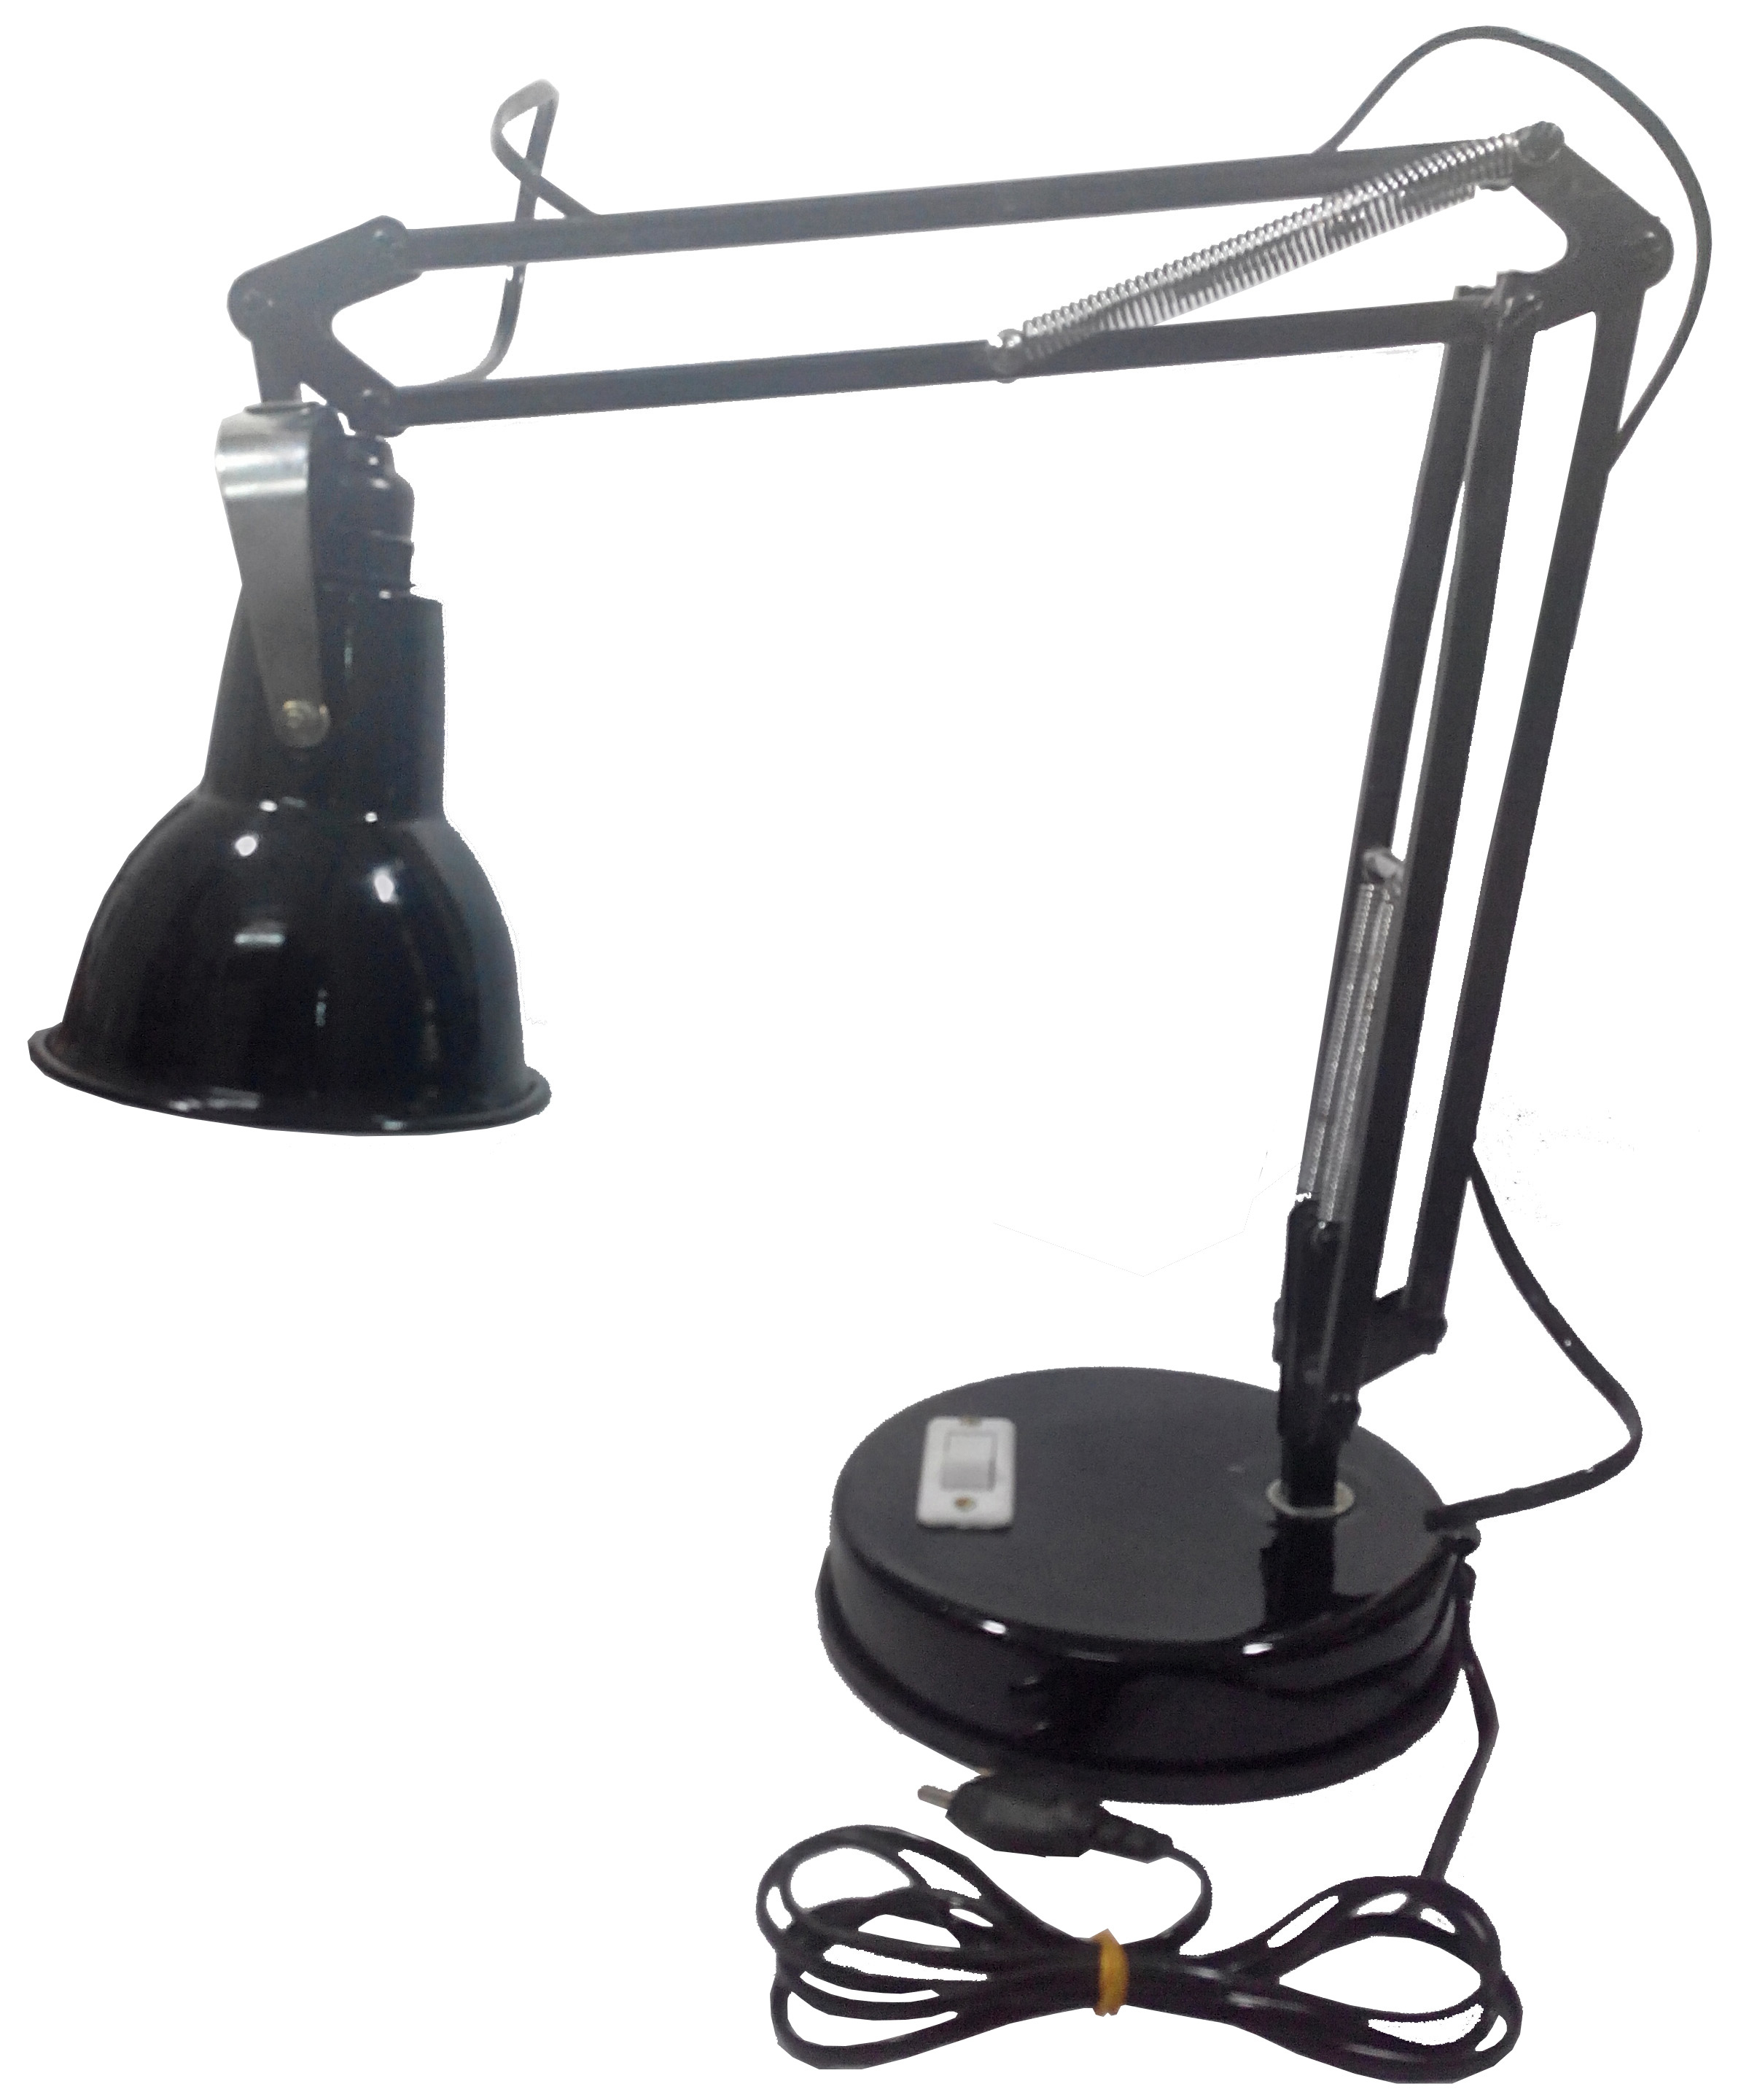 RDC 10 Inches Arm Black Doctors` Lamp for Study/Reading / Work/Professional`s & Technician`s Use